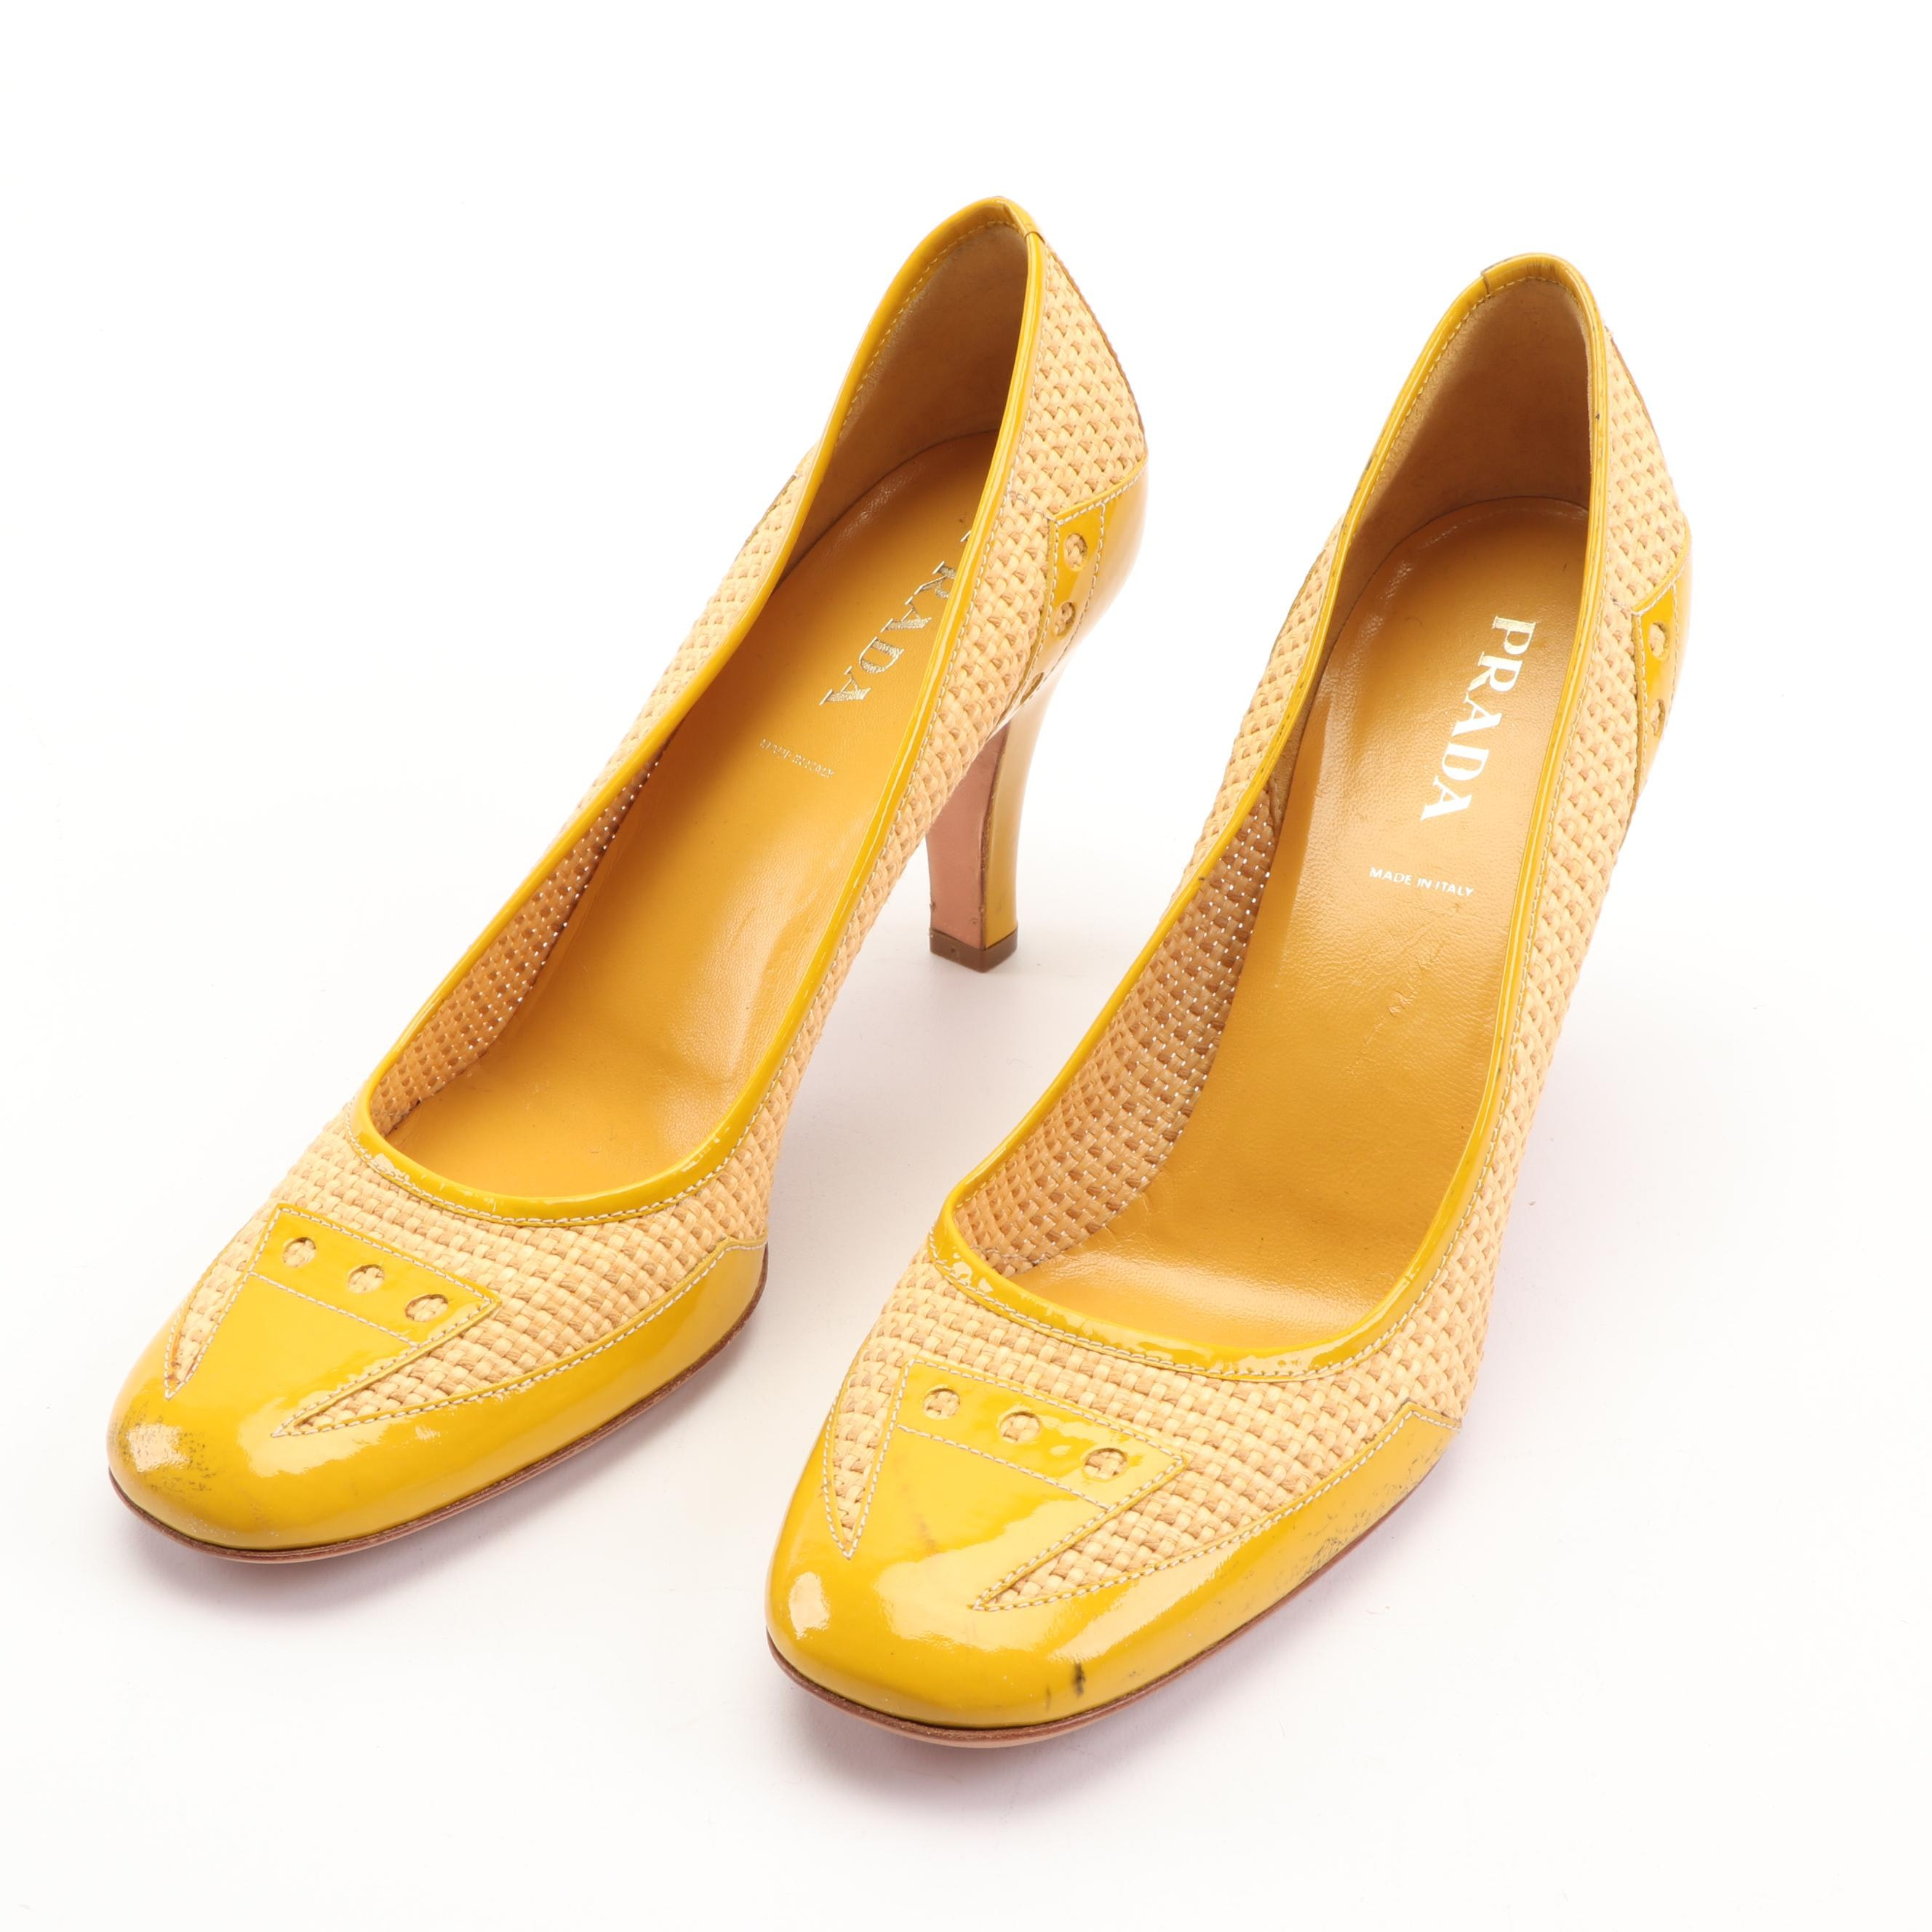 Prada Woven Raffia and Yellow Patent Leather Pumps